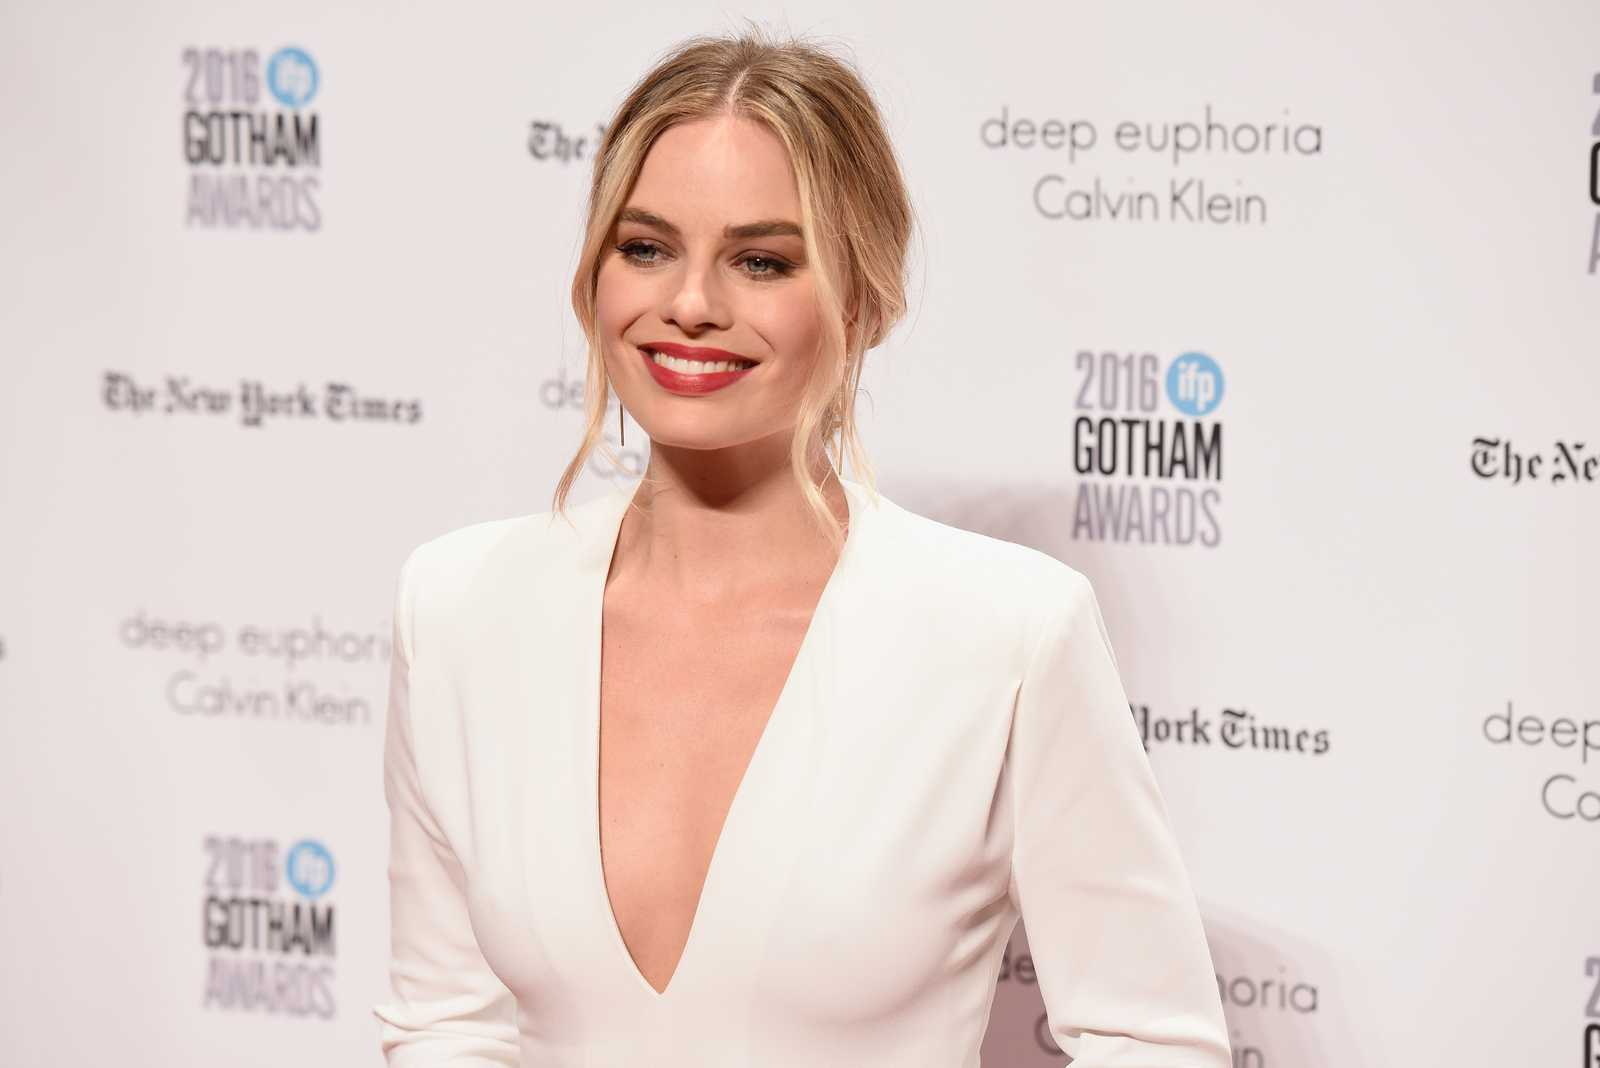 margot-robbie-ifps-26th-annual-gotham-independent-film-awards-november-28-201614